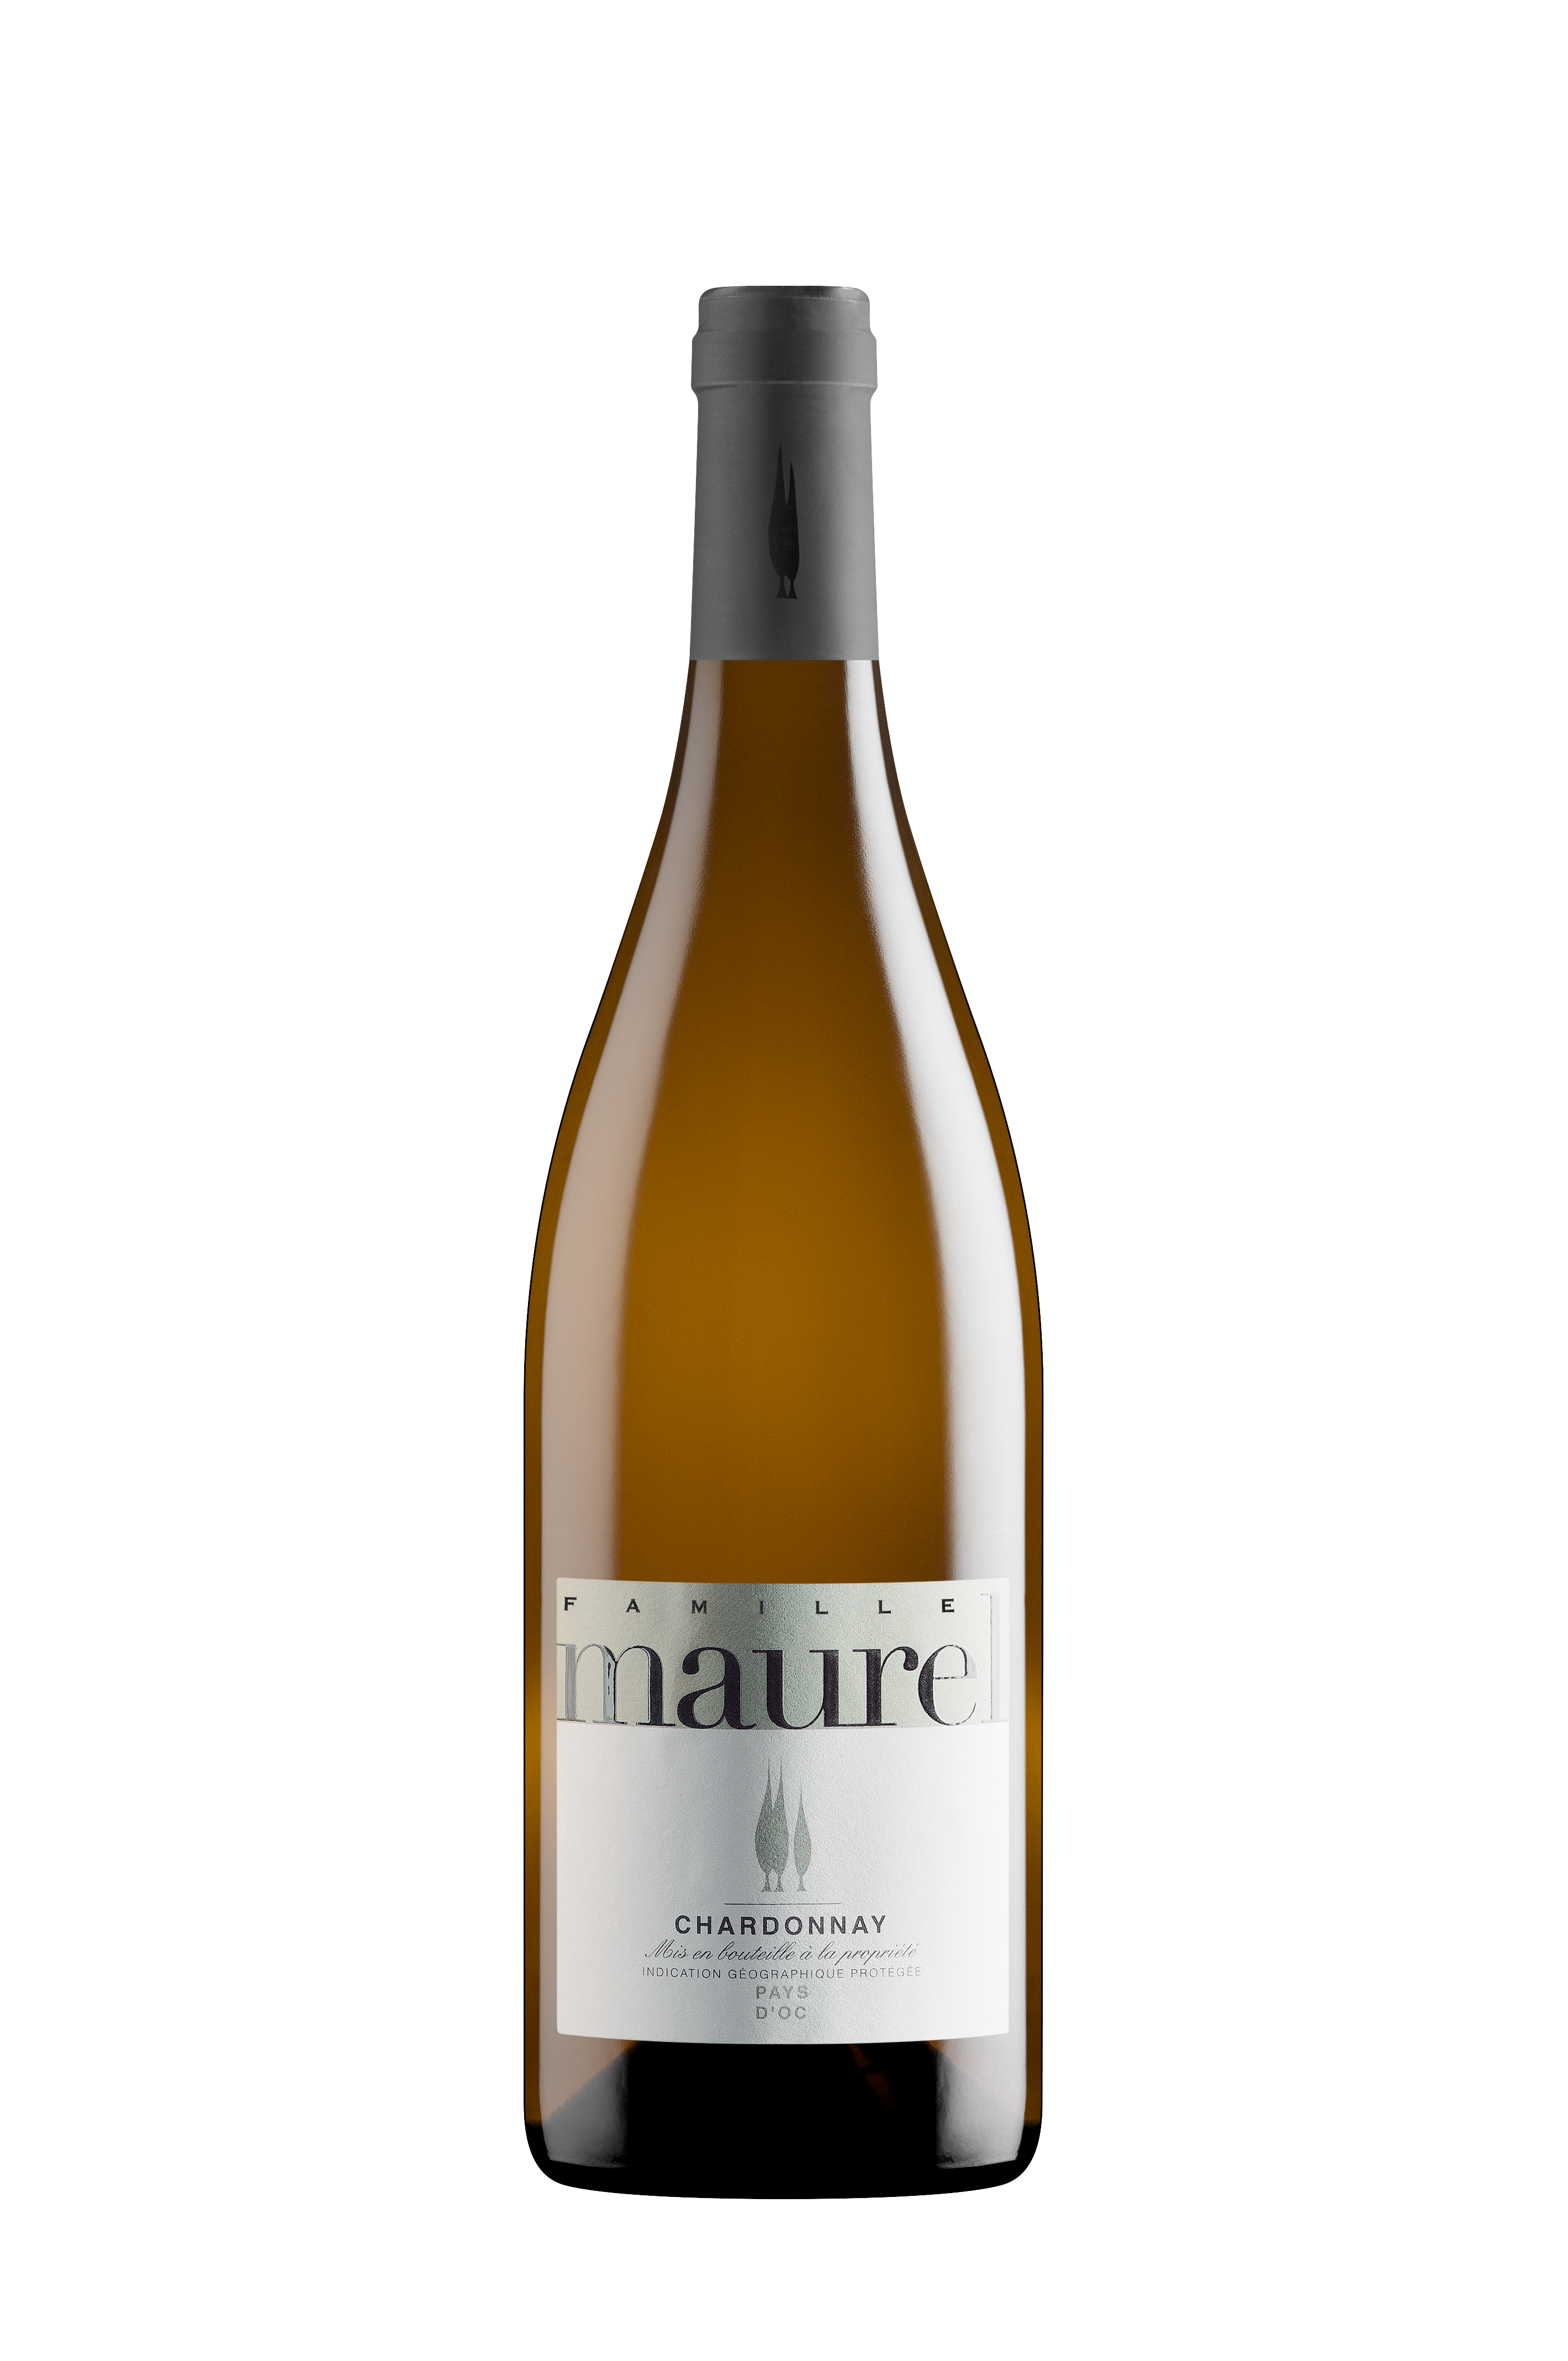 photo Famille Maurel chardonnay